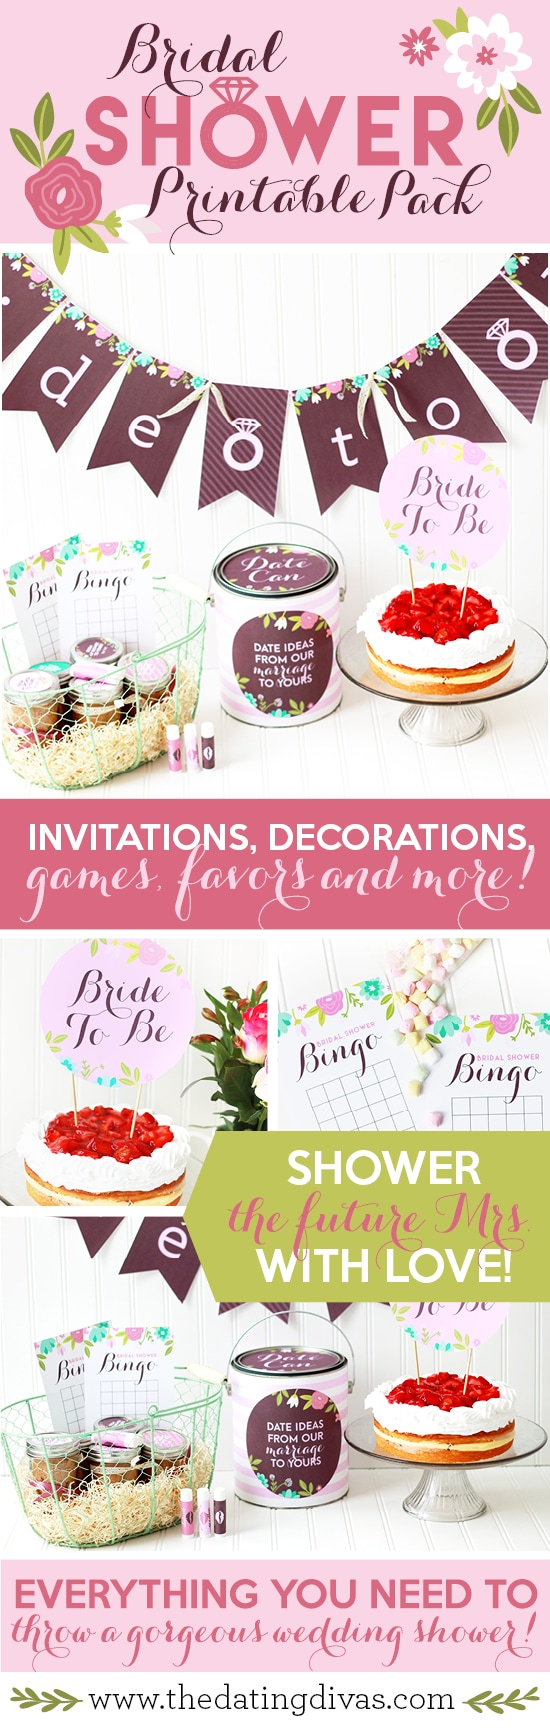 Bridal shower party park full of gorgeous printables and bridal shower game ideas! #TheDatingDivas #BridalShowerPrintables